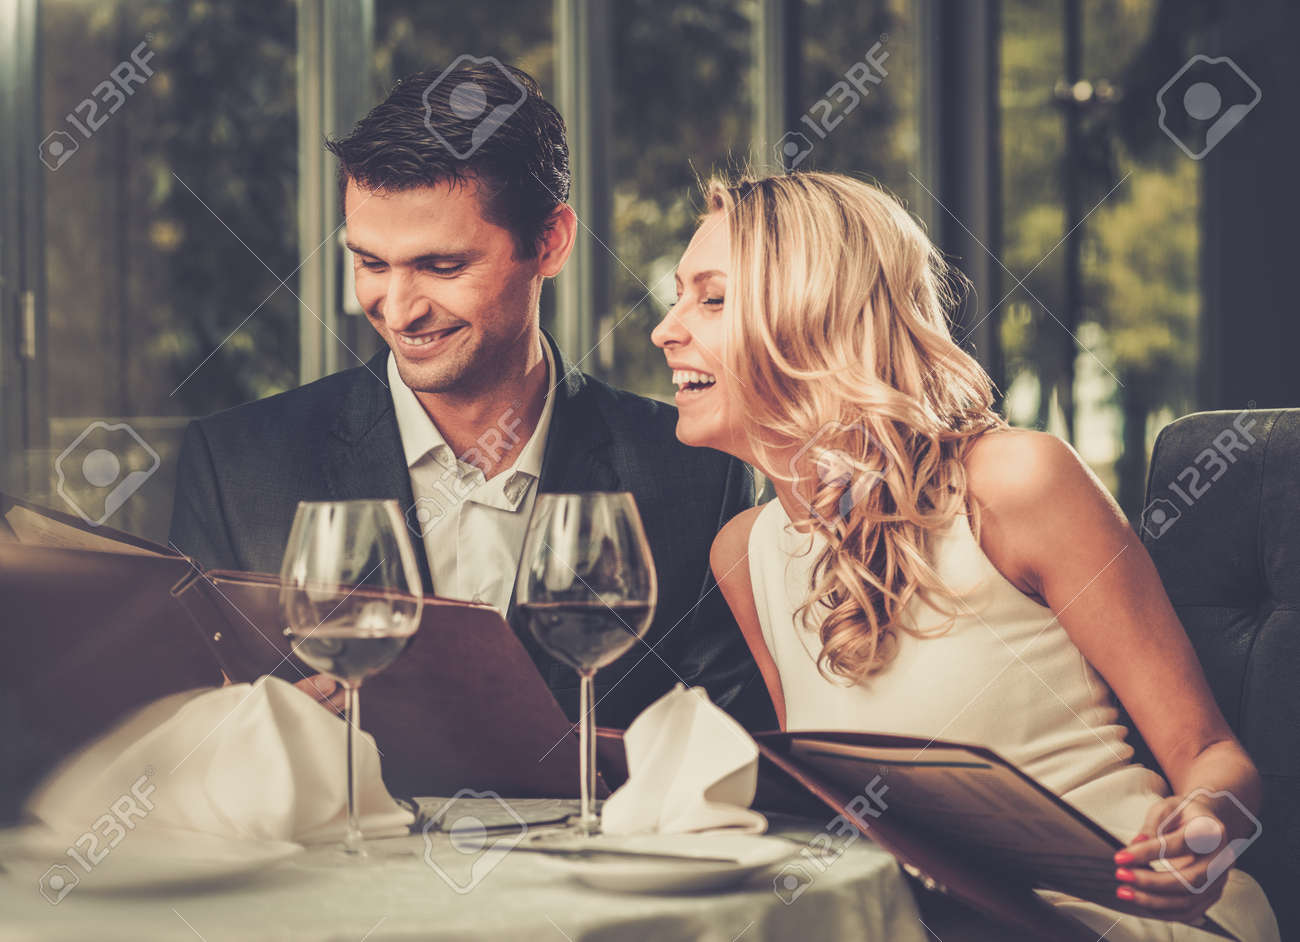 Cheerful couple with menu in a restaurant Stock Photo - 50662040